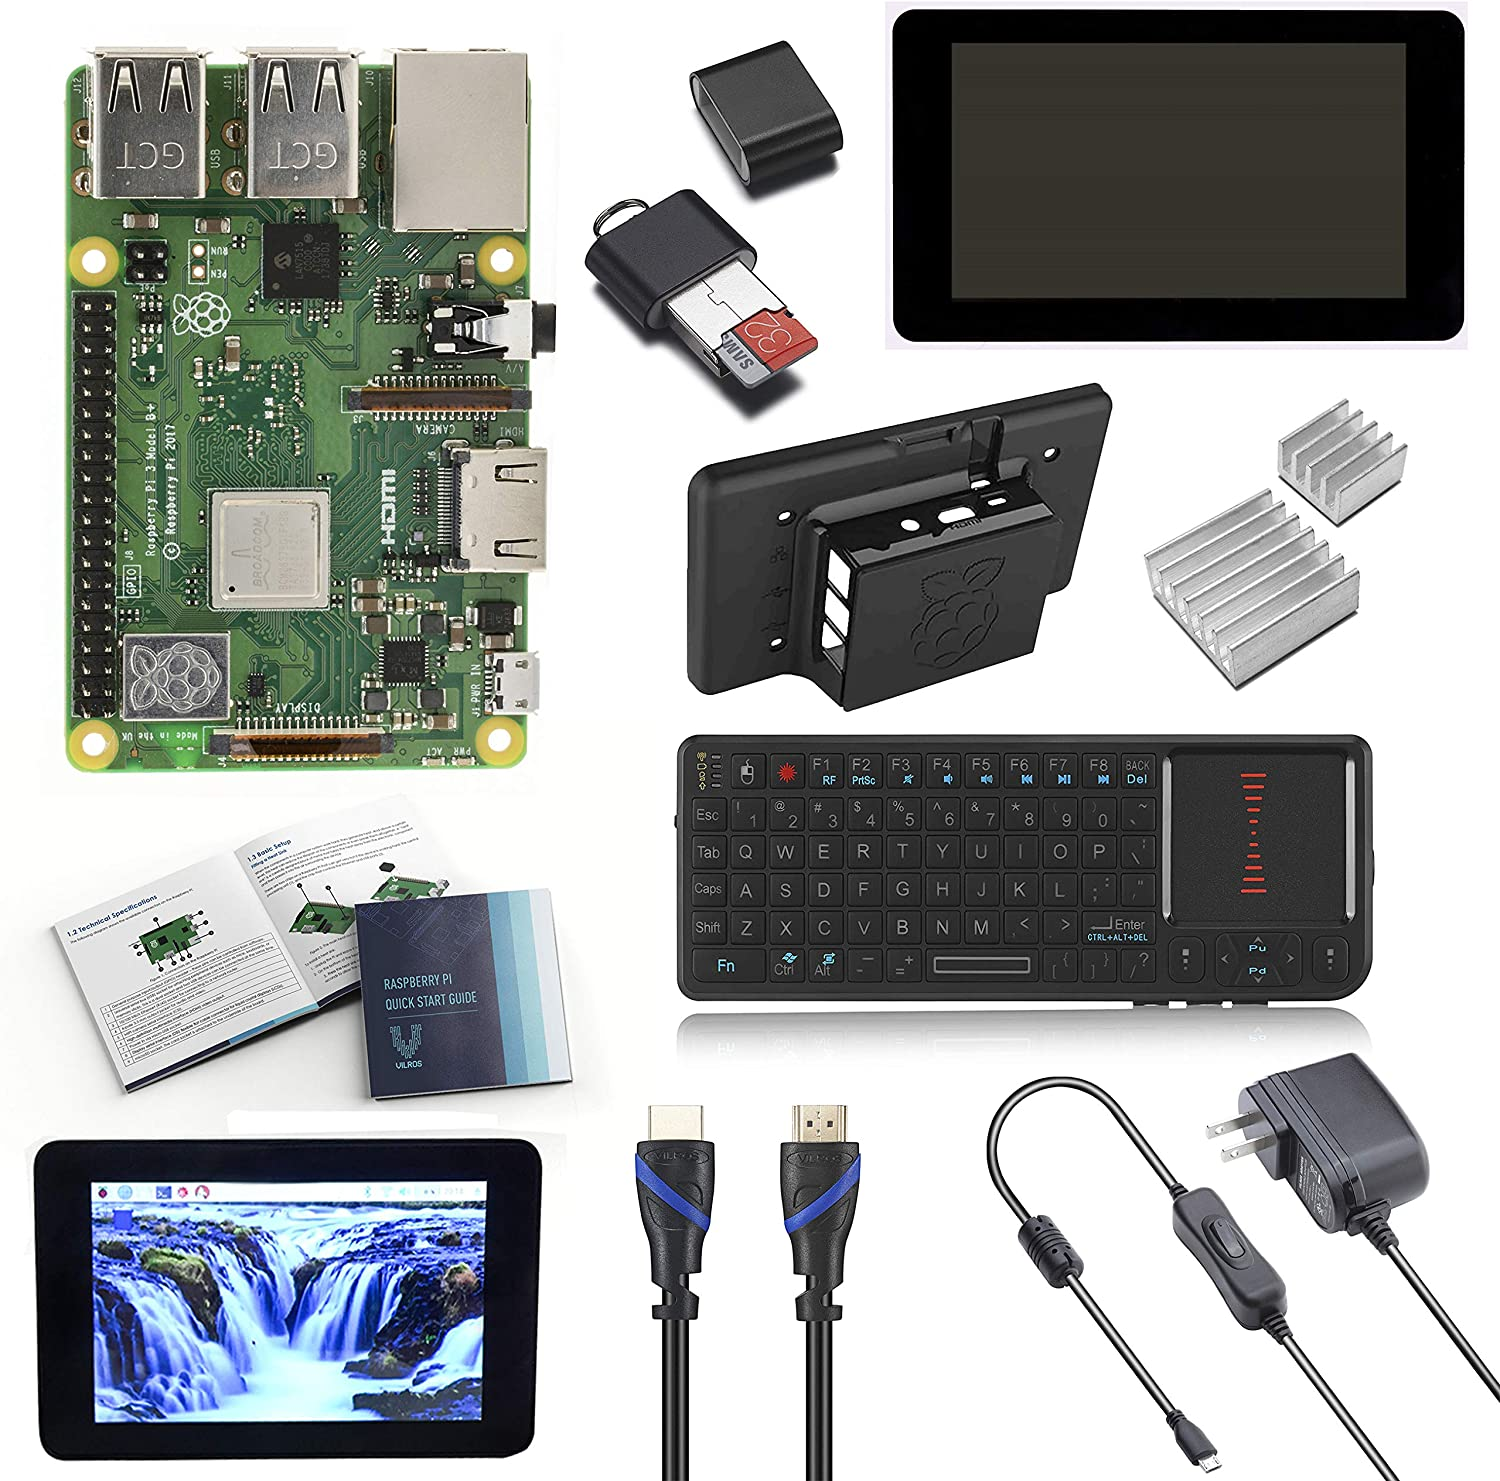 """V-Kits Raspberry Pi 3 Model B+ (Plus) Complete Starter Kit with 7"""" LCD Touchscreen Monitor & Mini Keyboard with Touchpad Combo"""